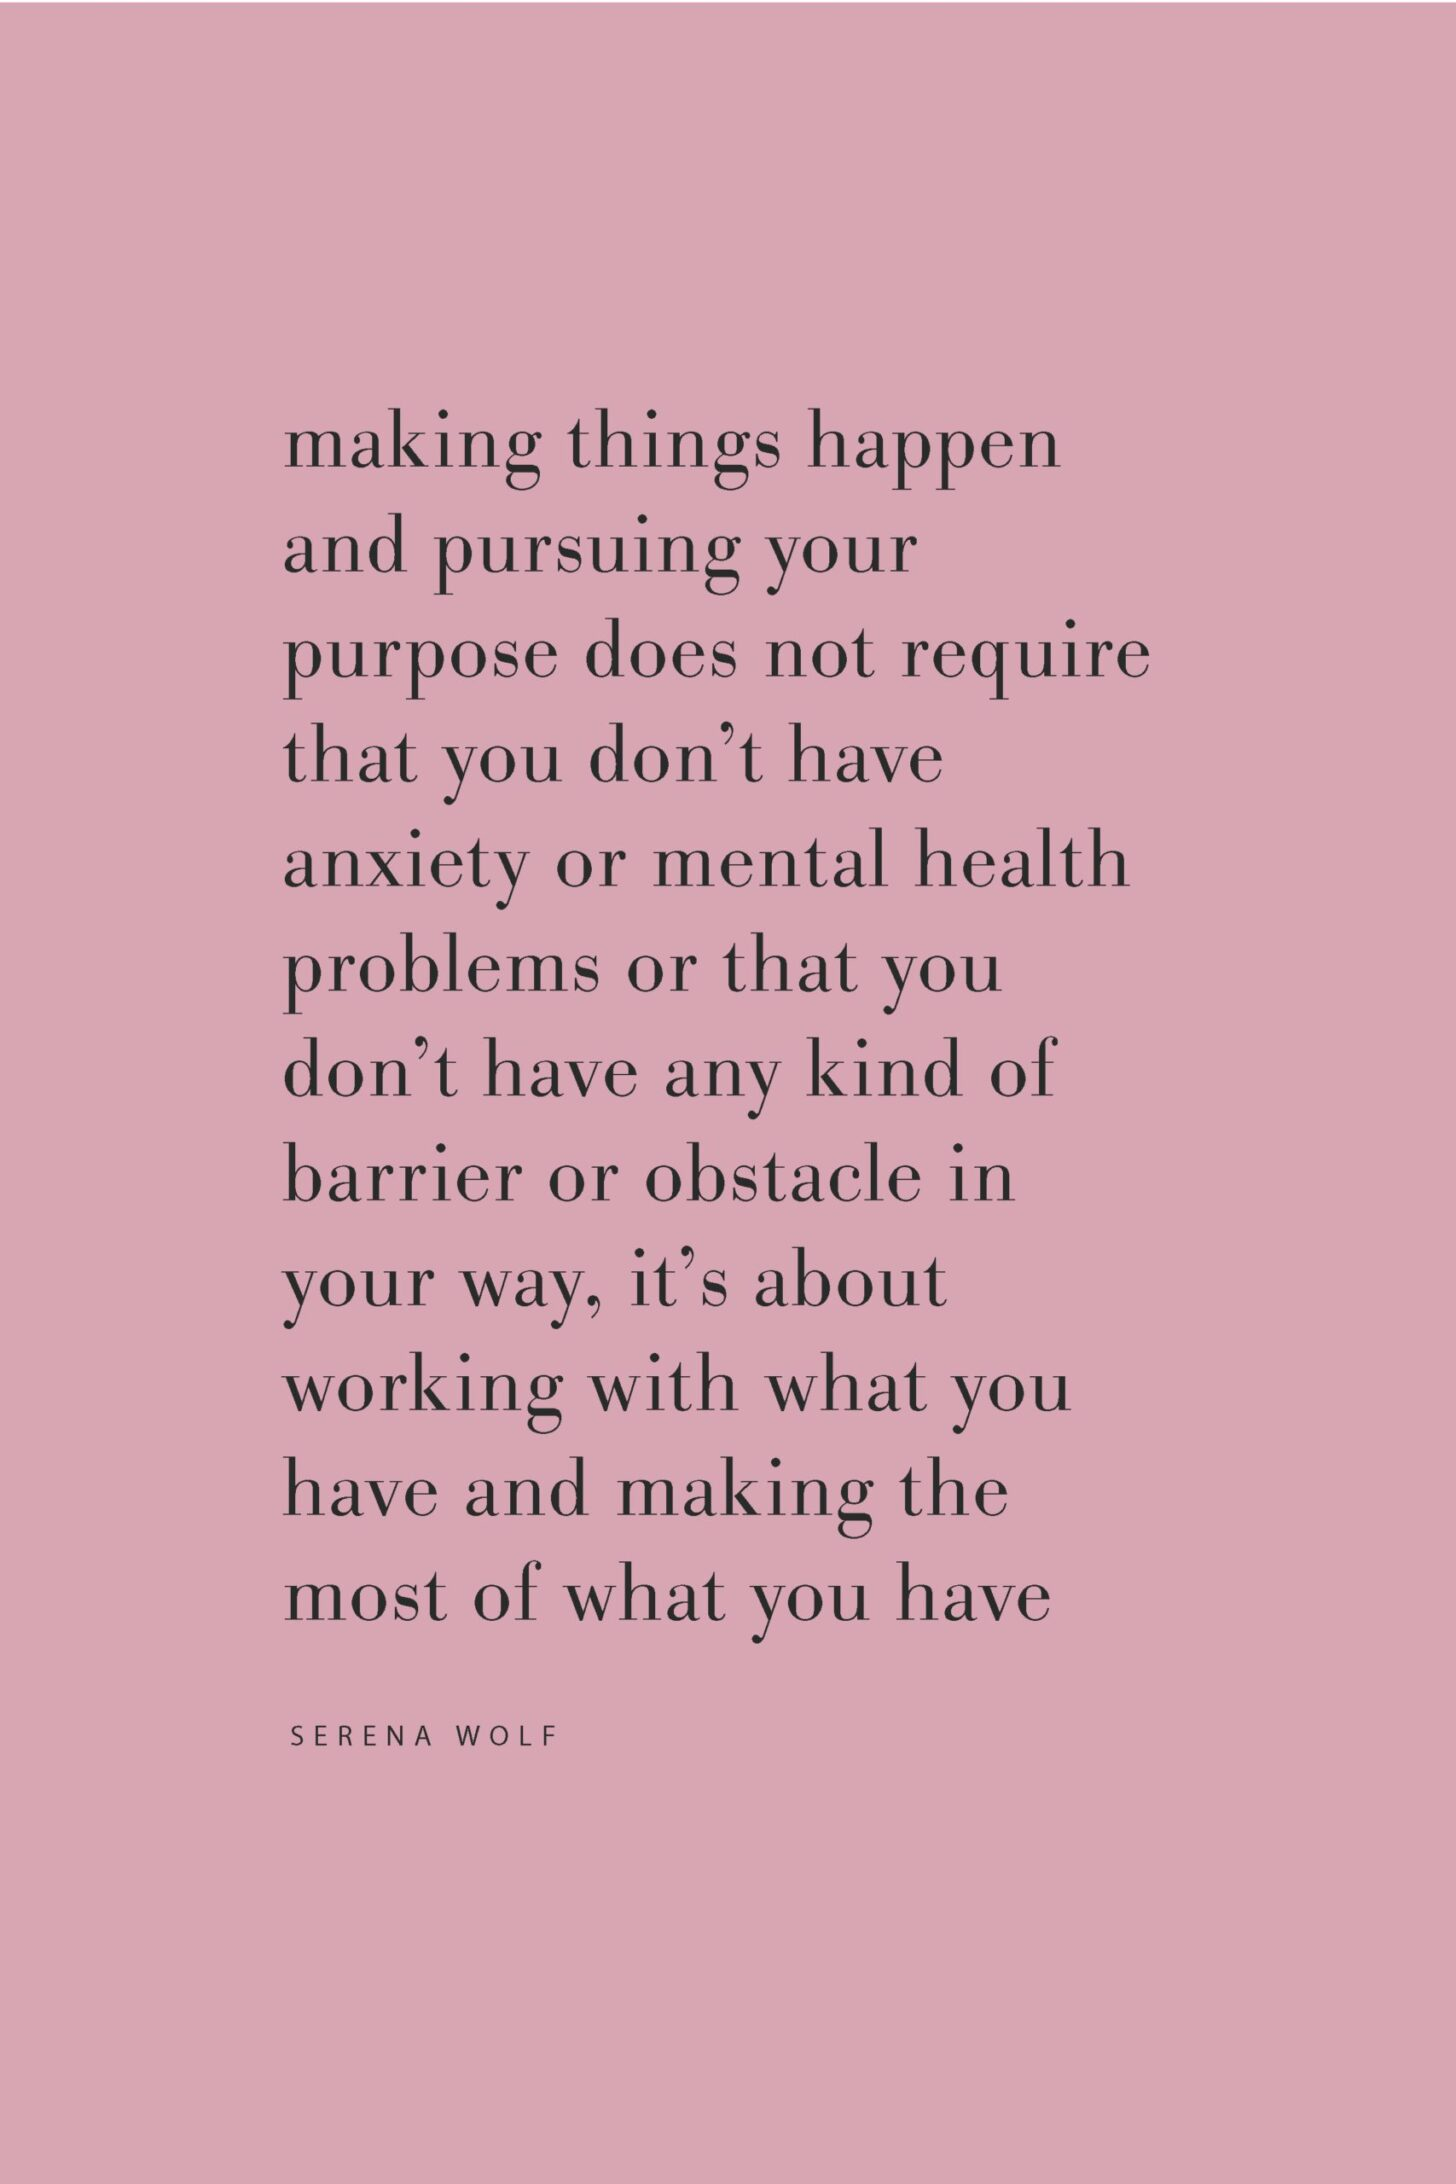 Quote on pursuing your purpose and making the most of what you have for health and happiness by Serena Wolf on the Feel Good Effect Podcast #realfoodwholelife #feelgoodeffectpodcast #successquote #productivityquote #purposequote #motivationalquote #positivityquote #inspirationalquote #healthquote #selfcarequote #mentalhealthquote